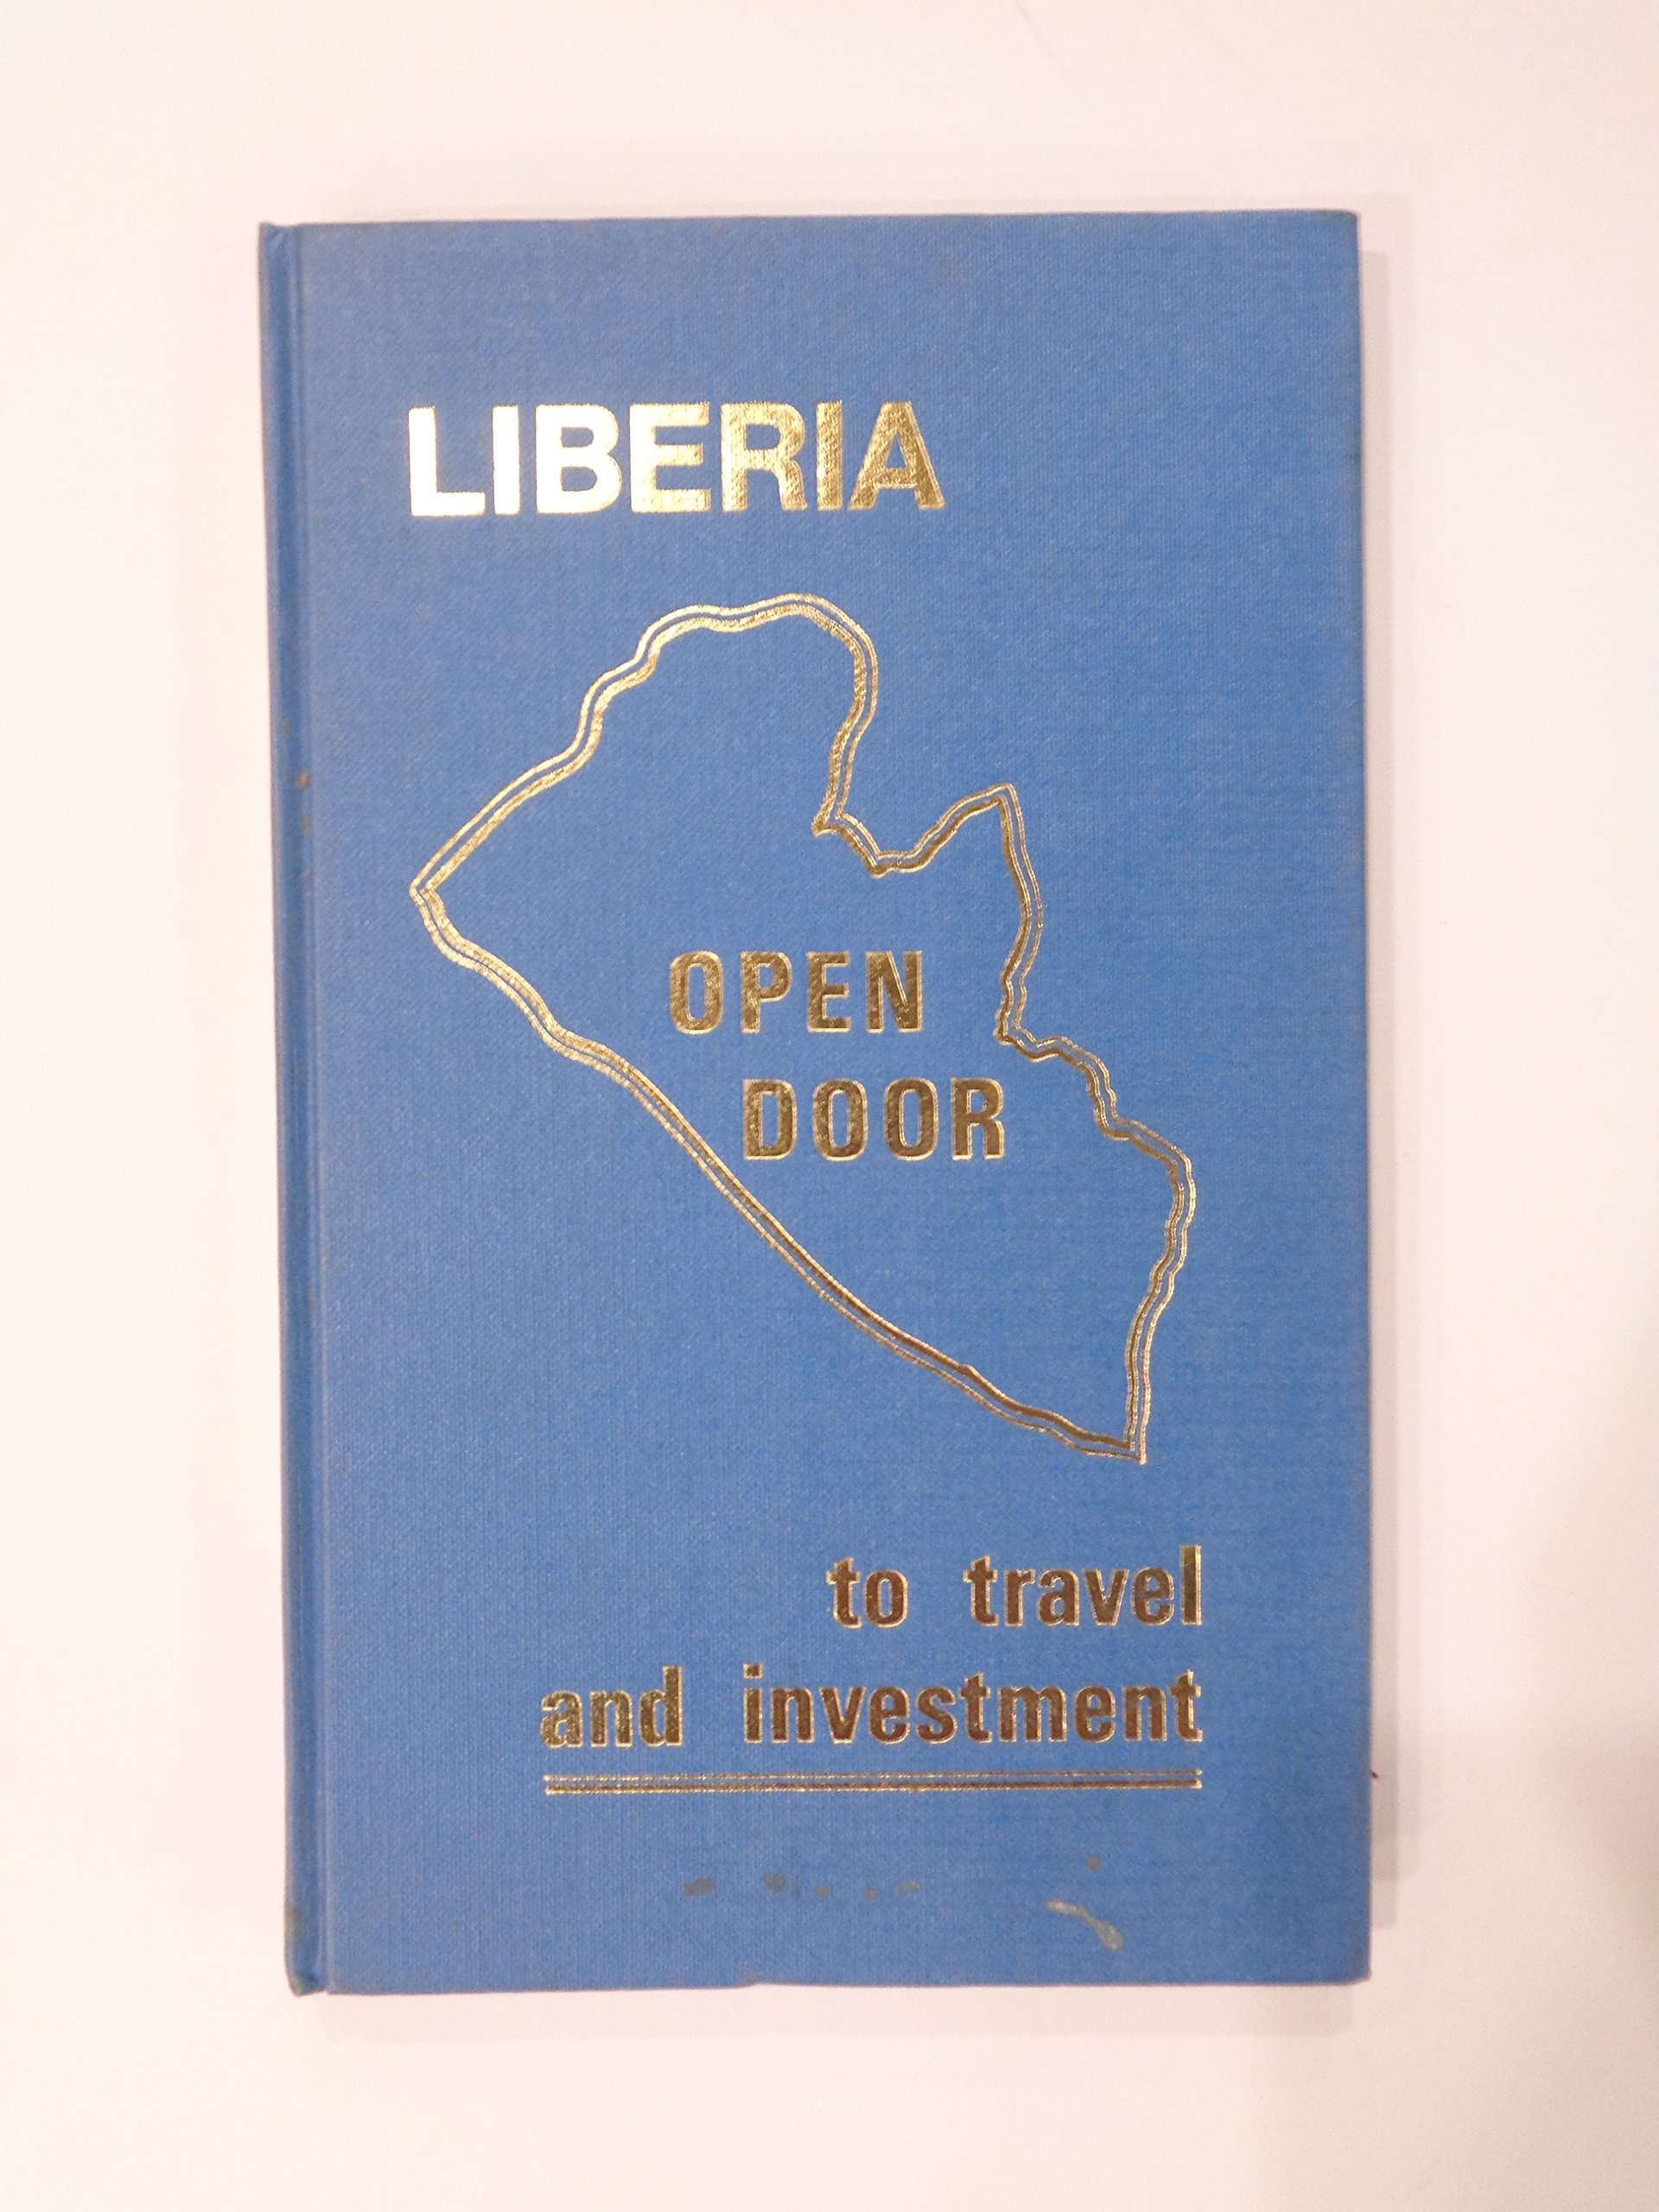 Liberia: Open Door To Travel And Investment.